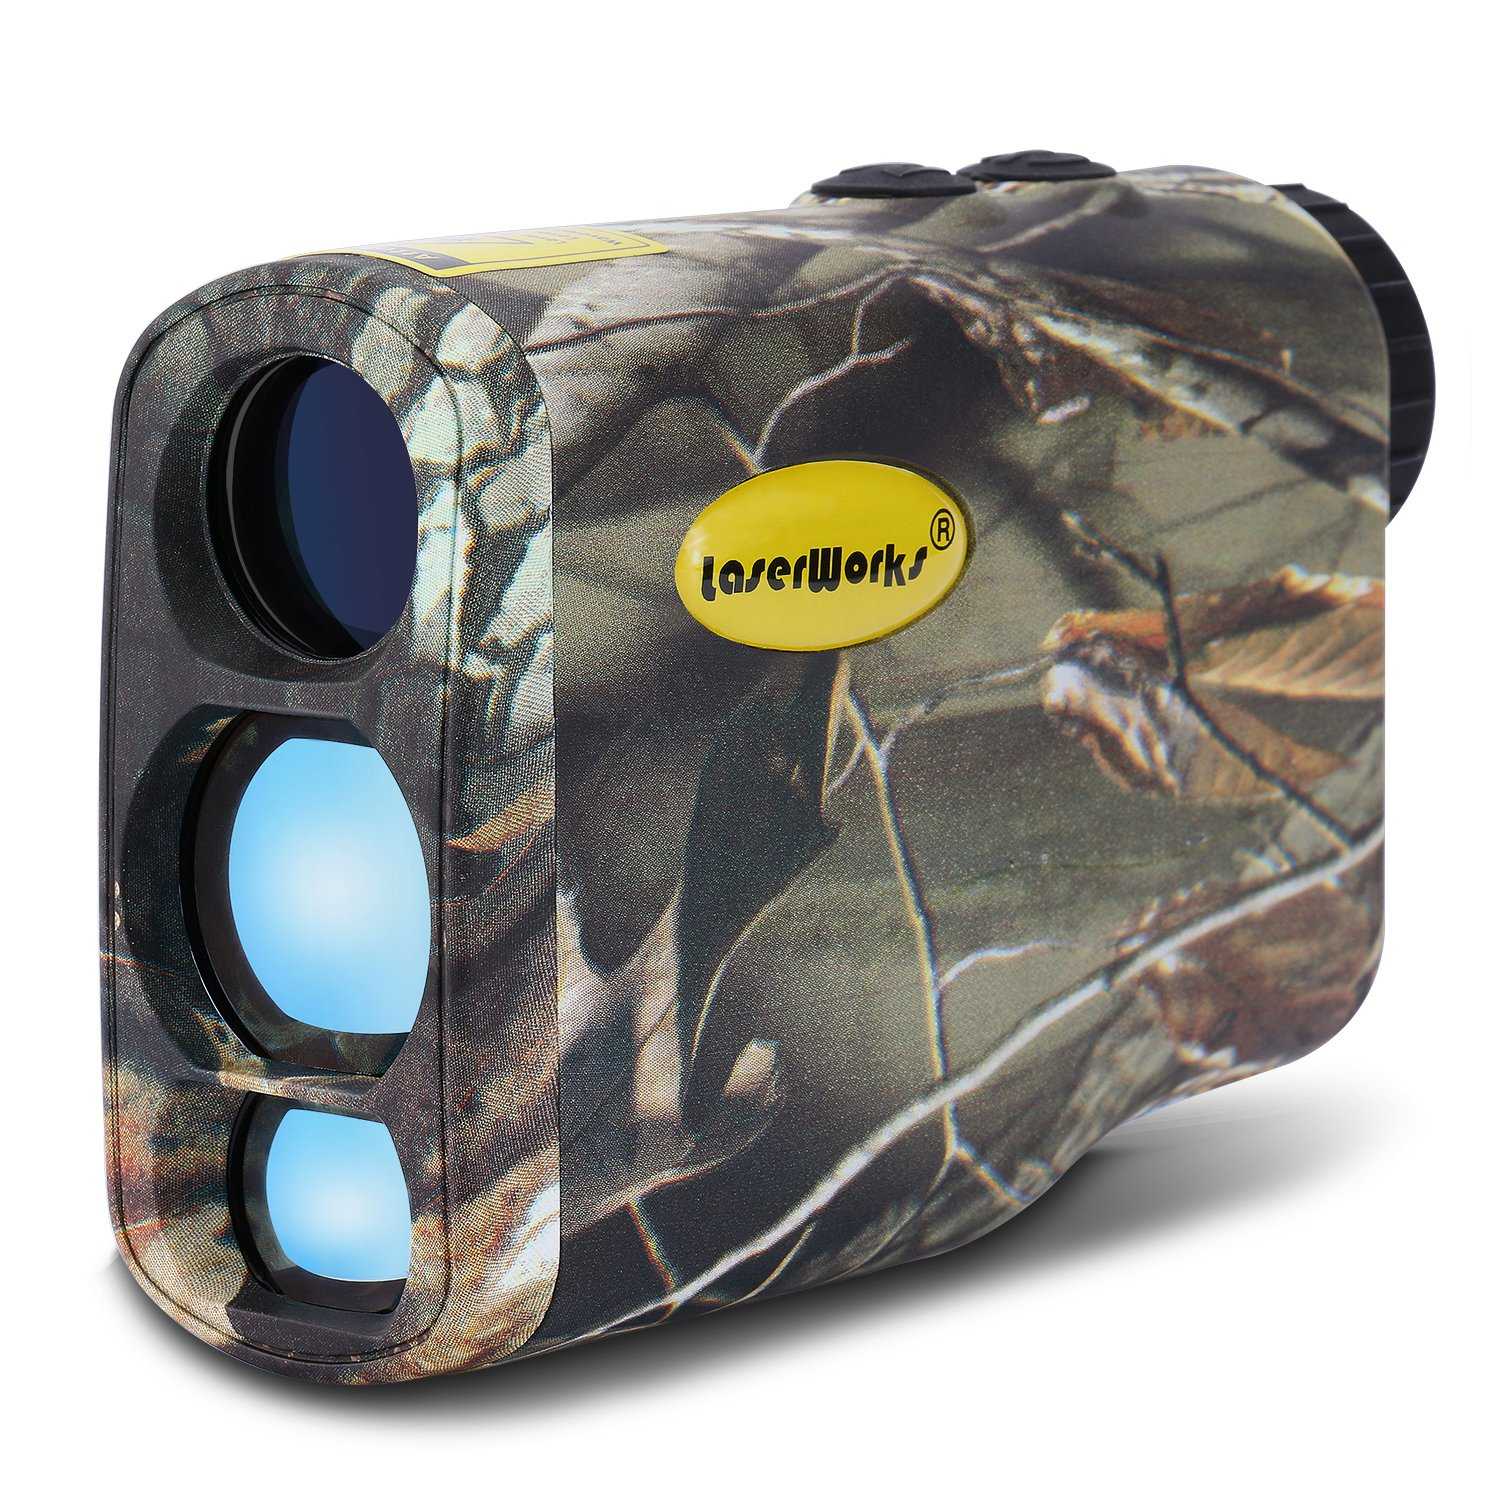 LaserWorks LW1000SPI Laser Rangefinder for Hunting Golf,Fog Measurement,Waterproof Camouflage by LaserWorks